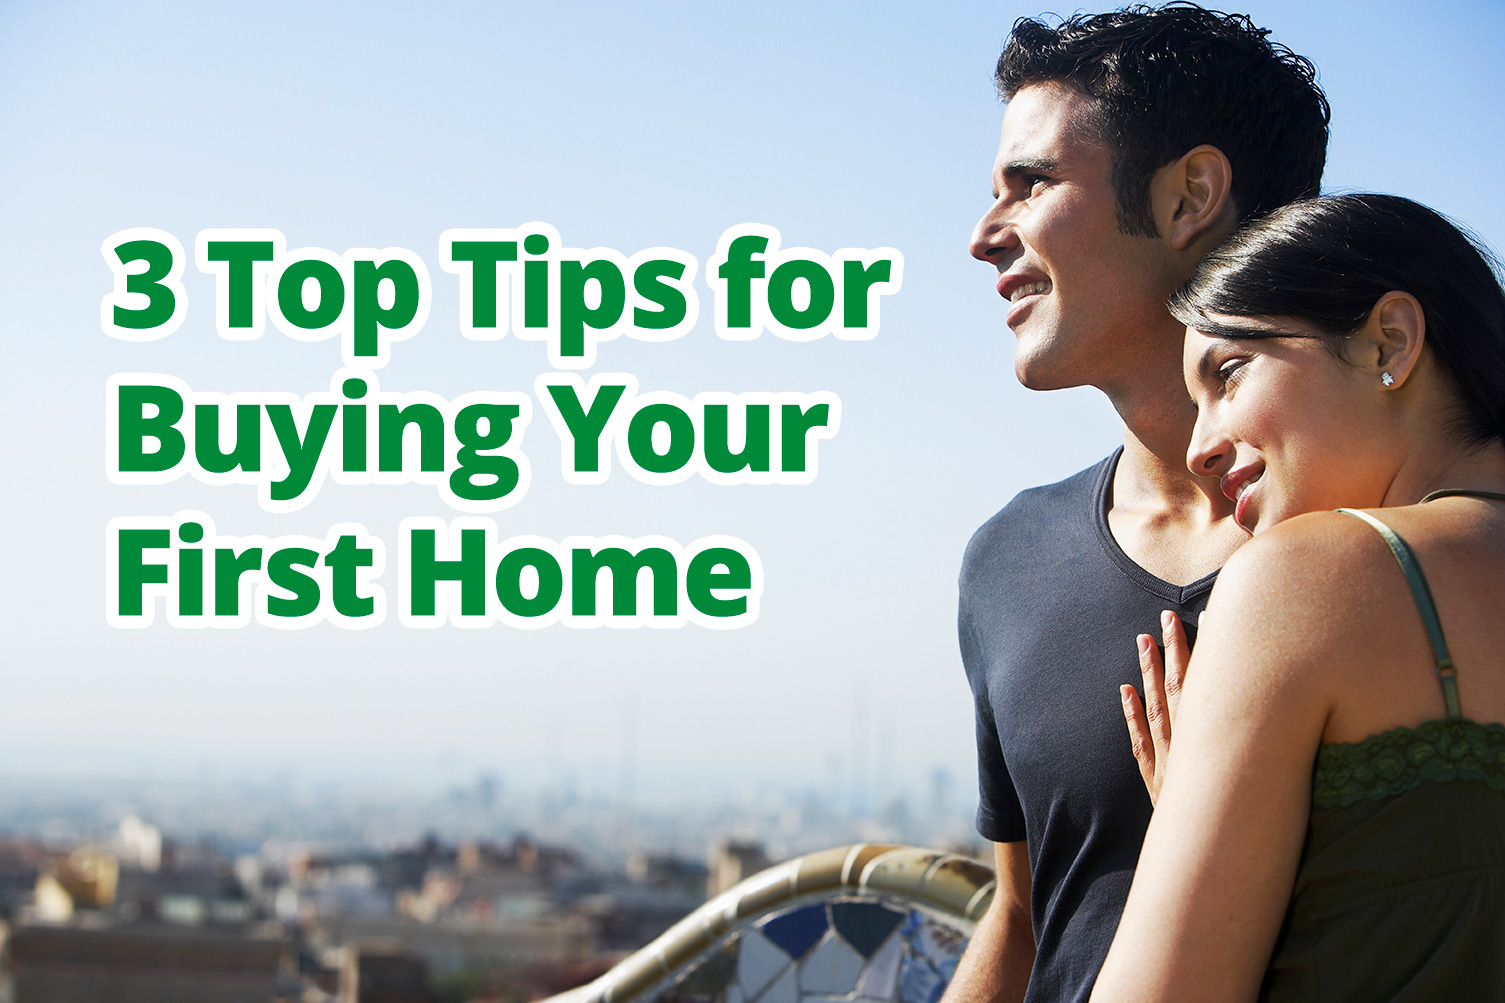 3 Top Tips for Buying Your First Home